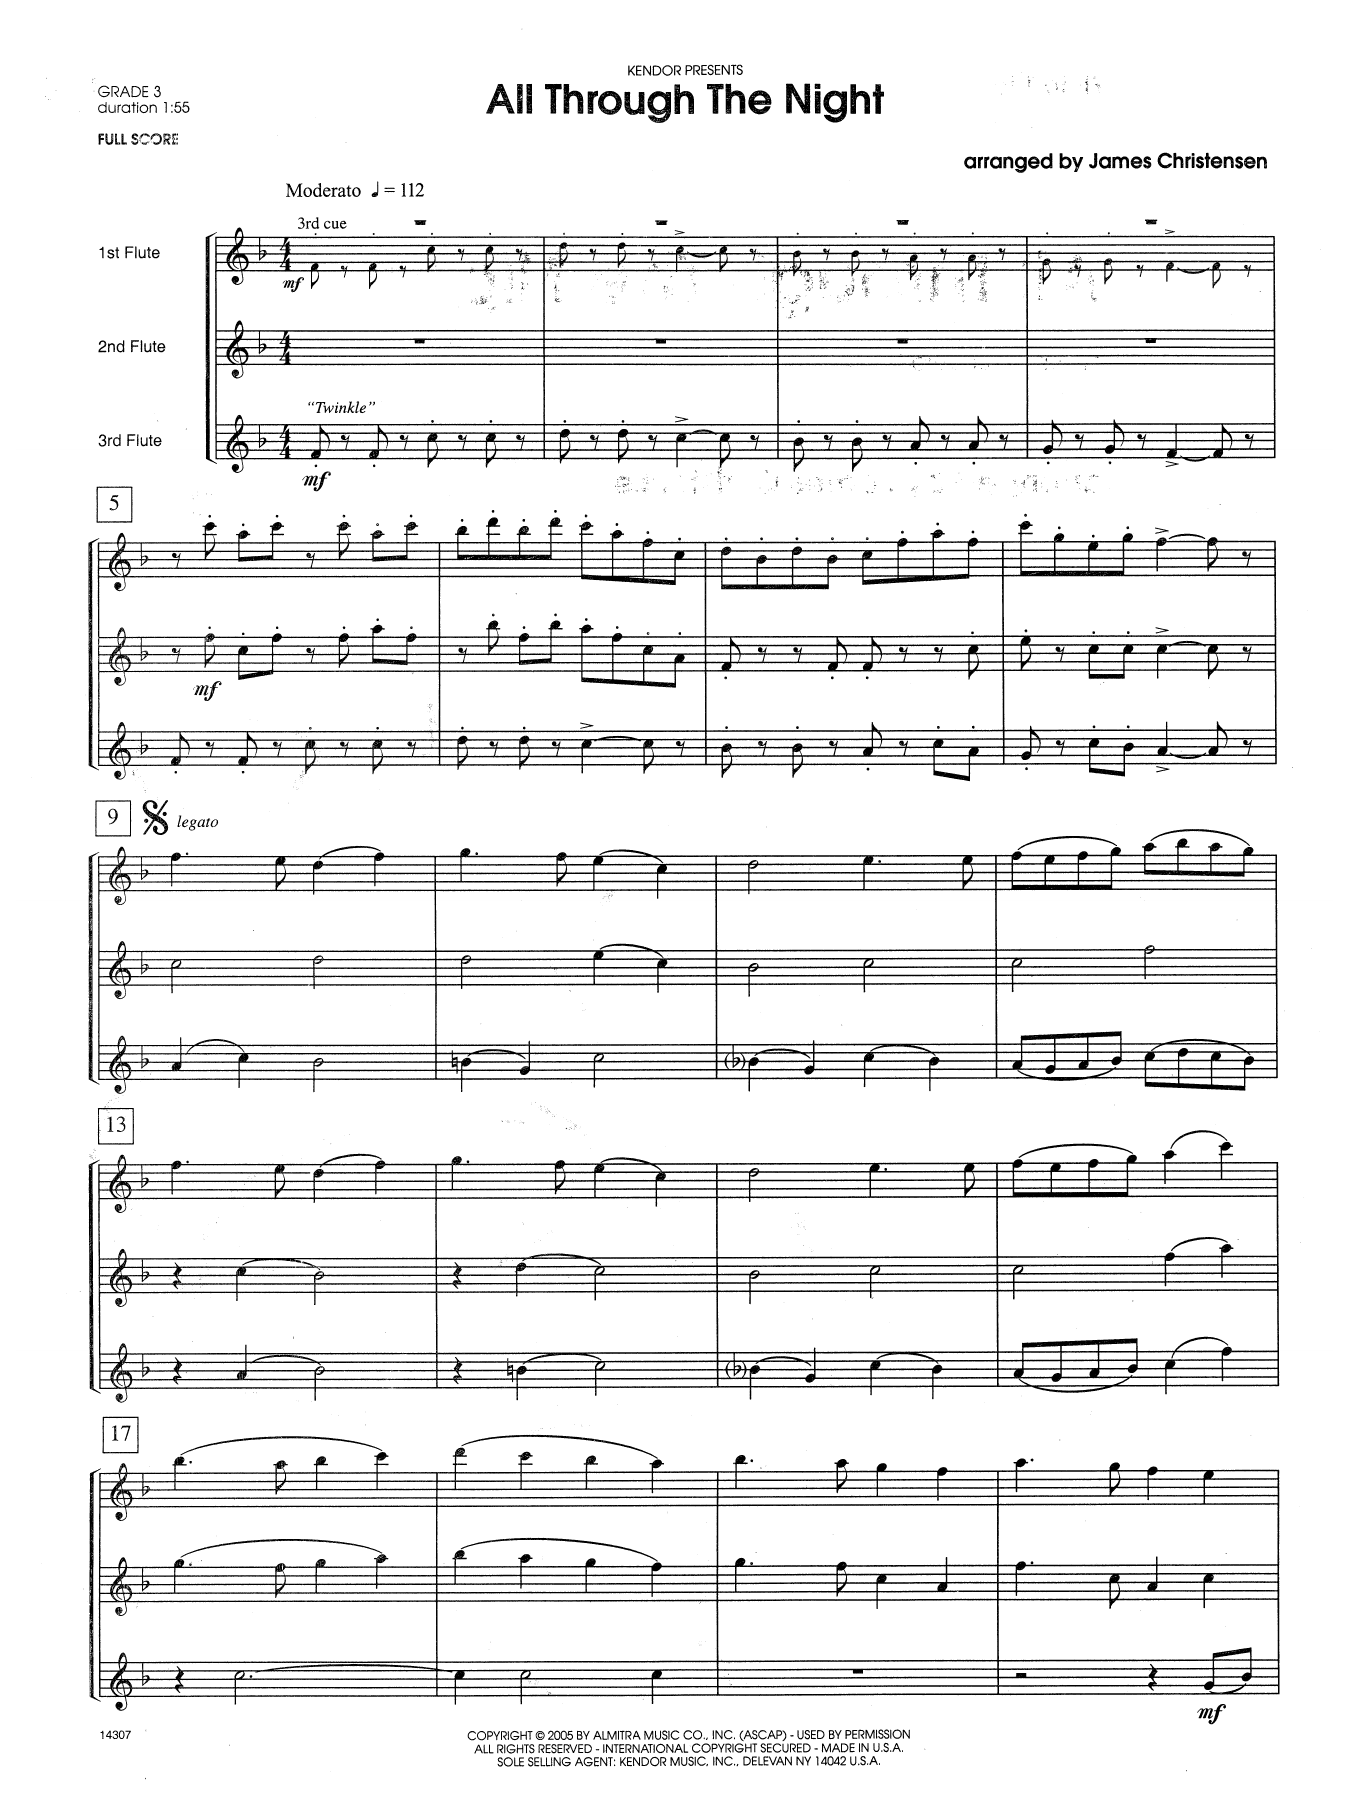 All Through the Night (COMPLETE) sheet music for flute quartet by James Christensen